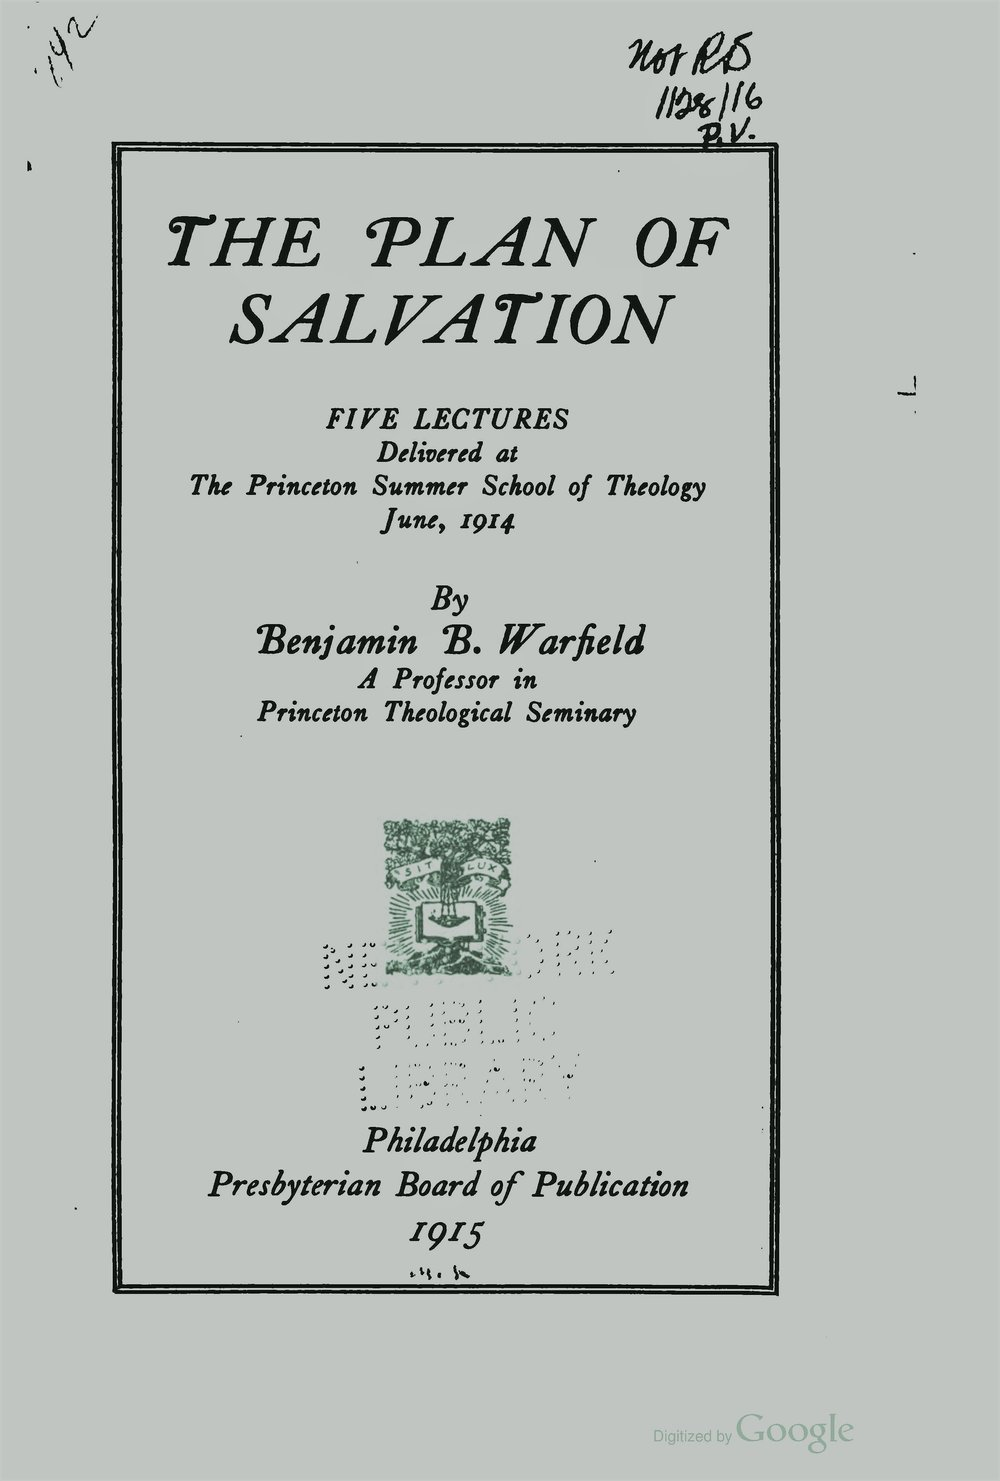 Warfield, Benjamin Breckinridge, The Plan of Salvation Title Page.jpg